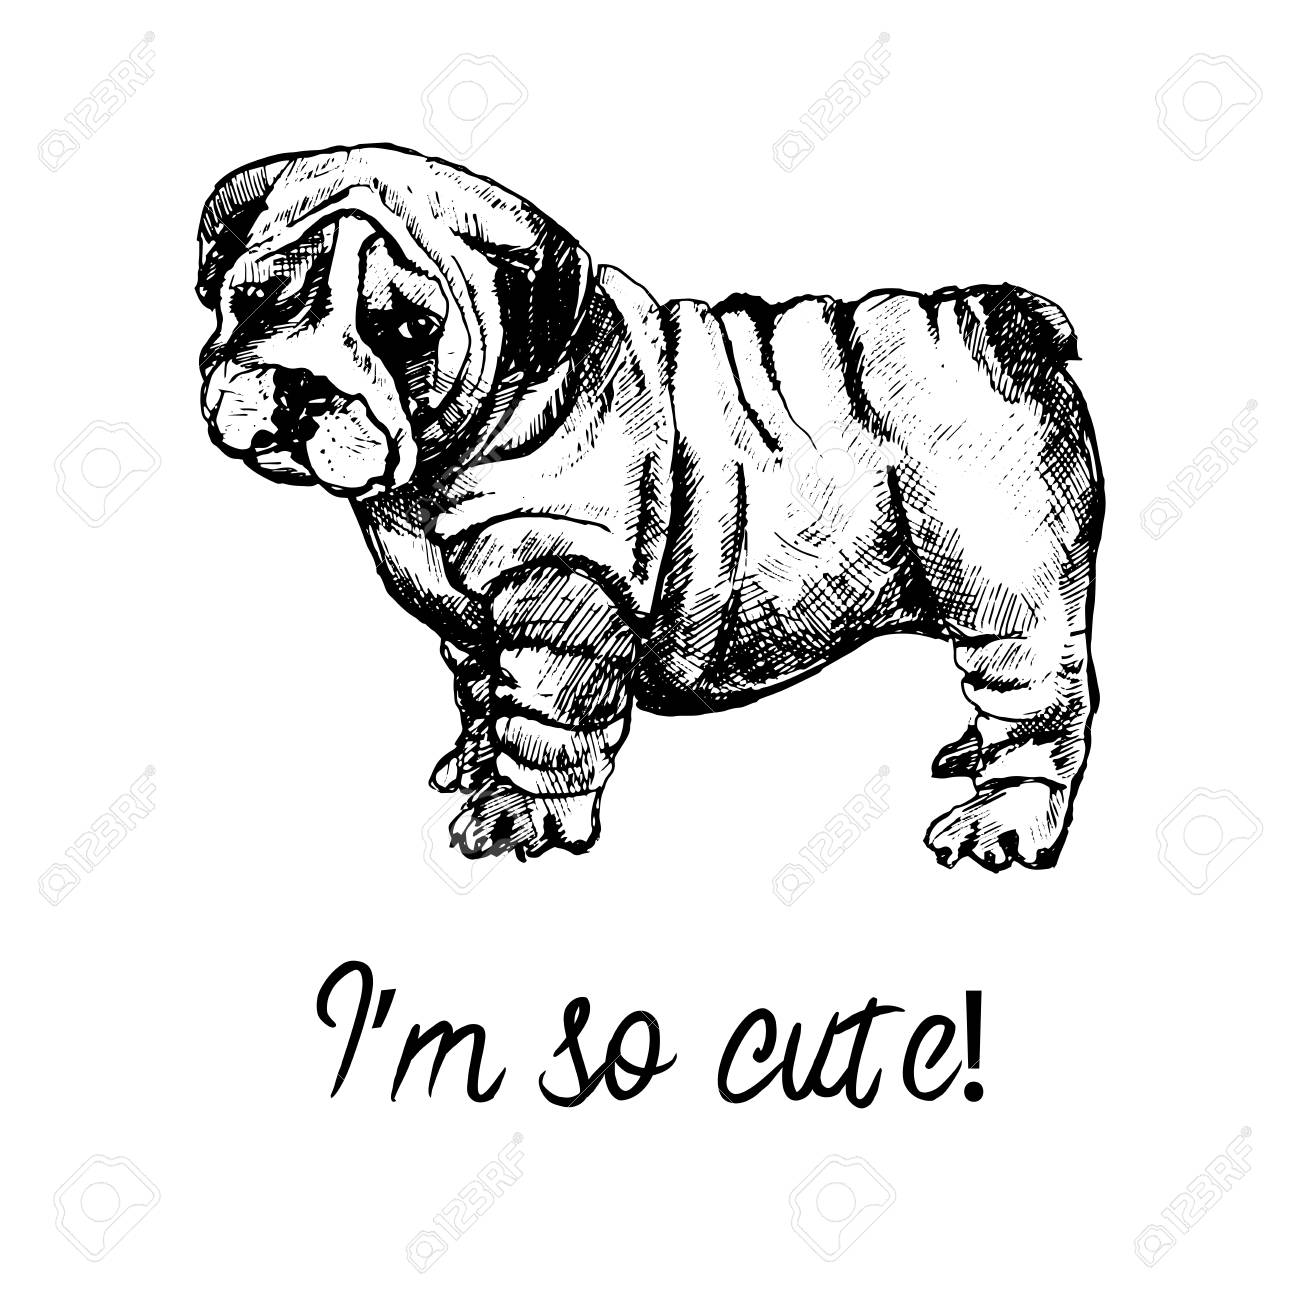 Hand Drawn Sketch Style English Bulldog Puppy Vector Illustration Royalty Free Cliparts Vectors And Stock Illustration Image 93313172